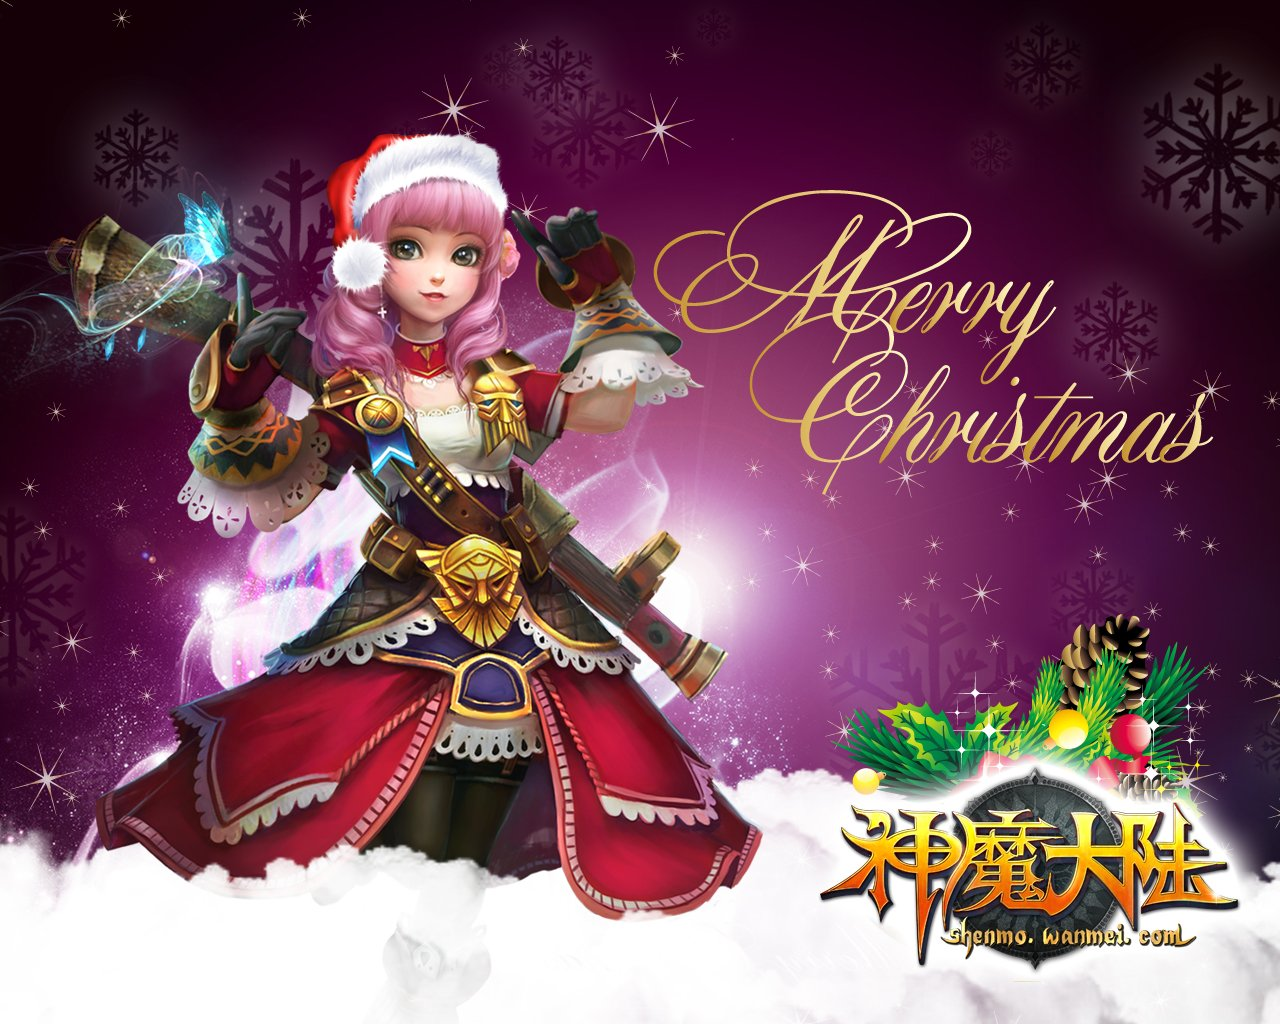 Anime christmas wallpaper hd wallpapersafari - Anime merry christmas wallpaper ...